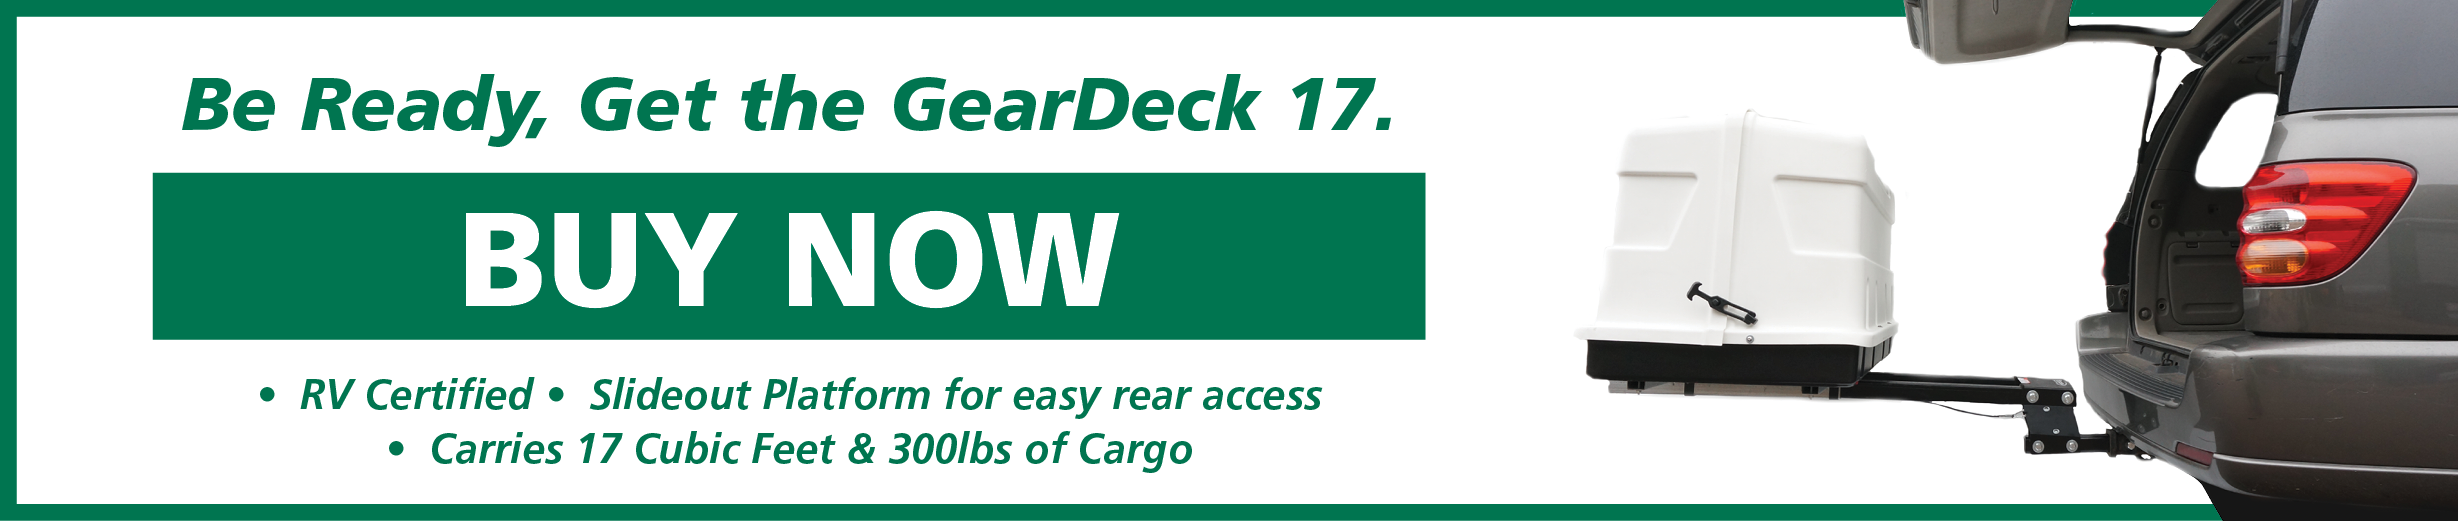 The GearDeck 17 is a RV Certified, Durable, 300lbs and 17 Cubic feet Cargo Carrier